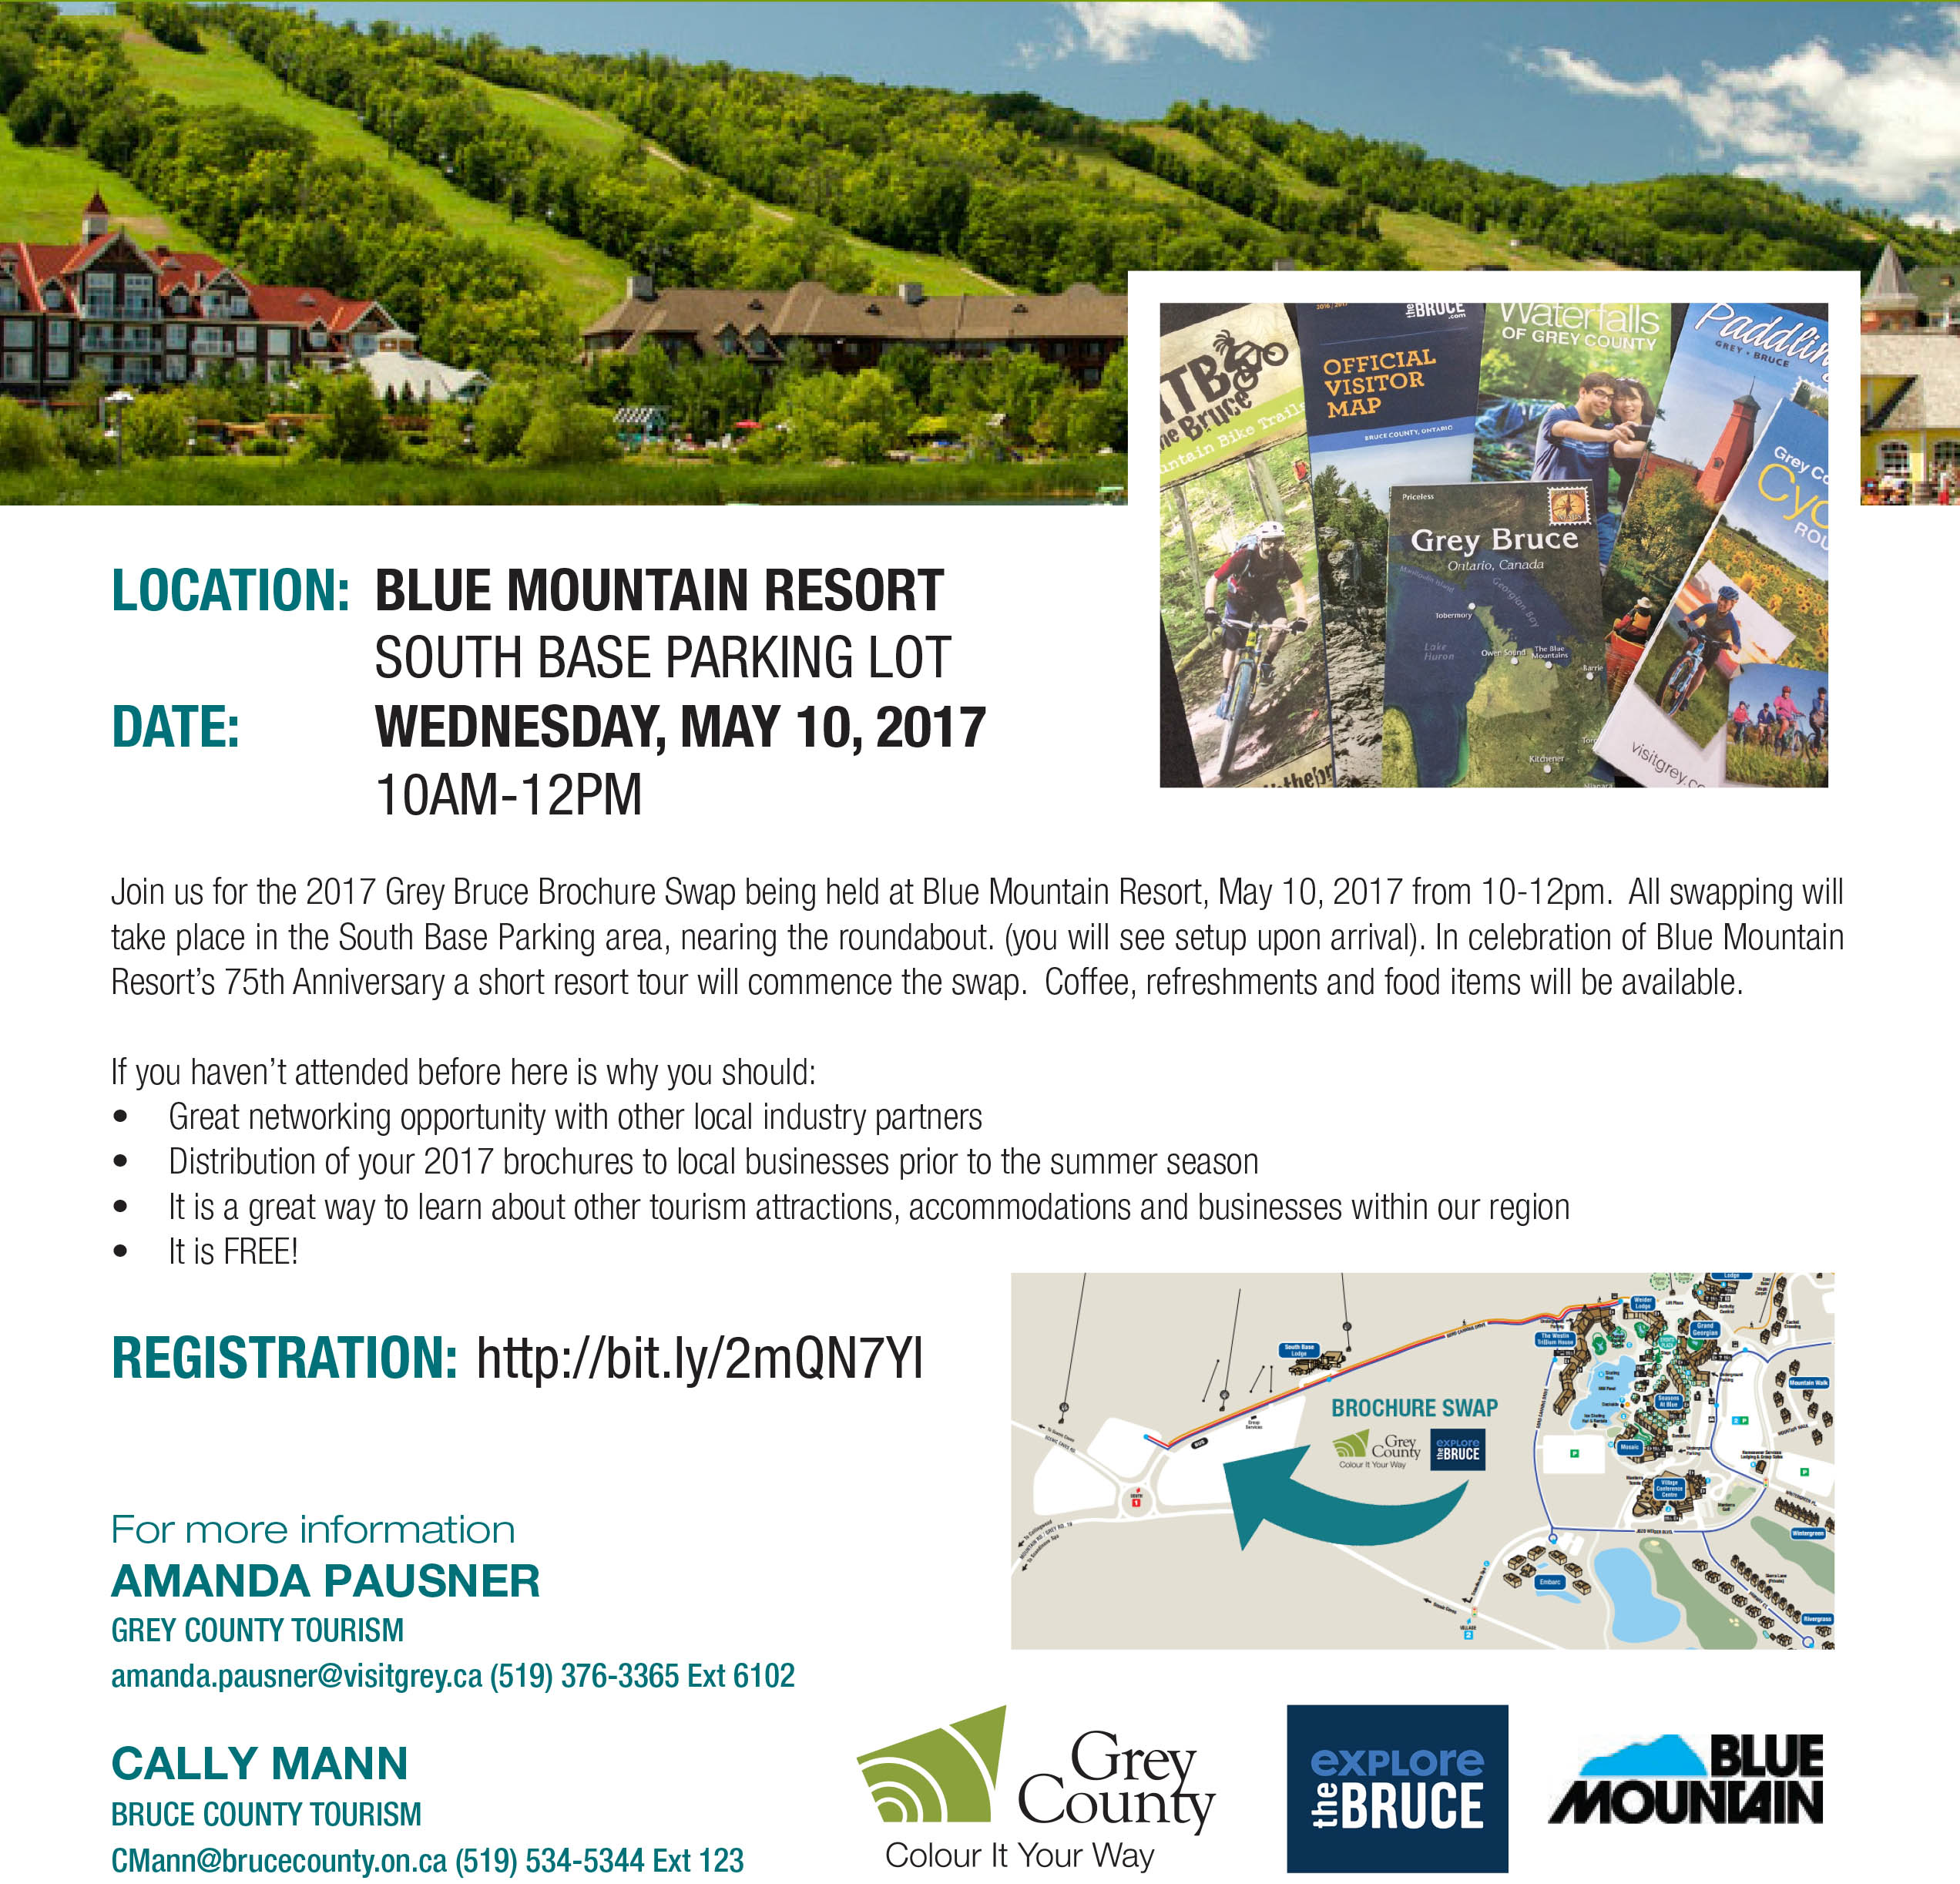 Grey County Brochure Swap at Blue Mountain Resort on May 10th